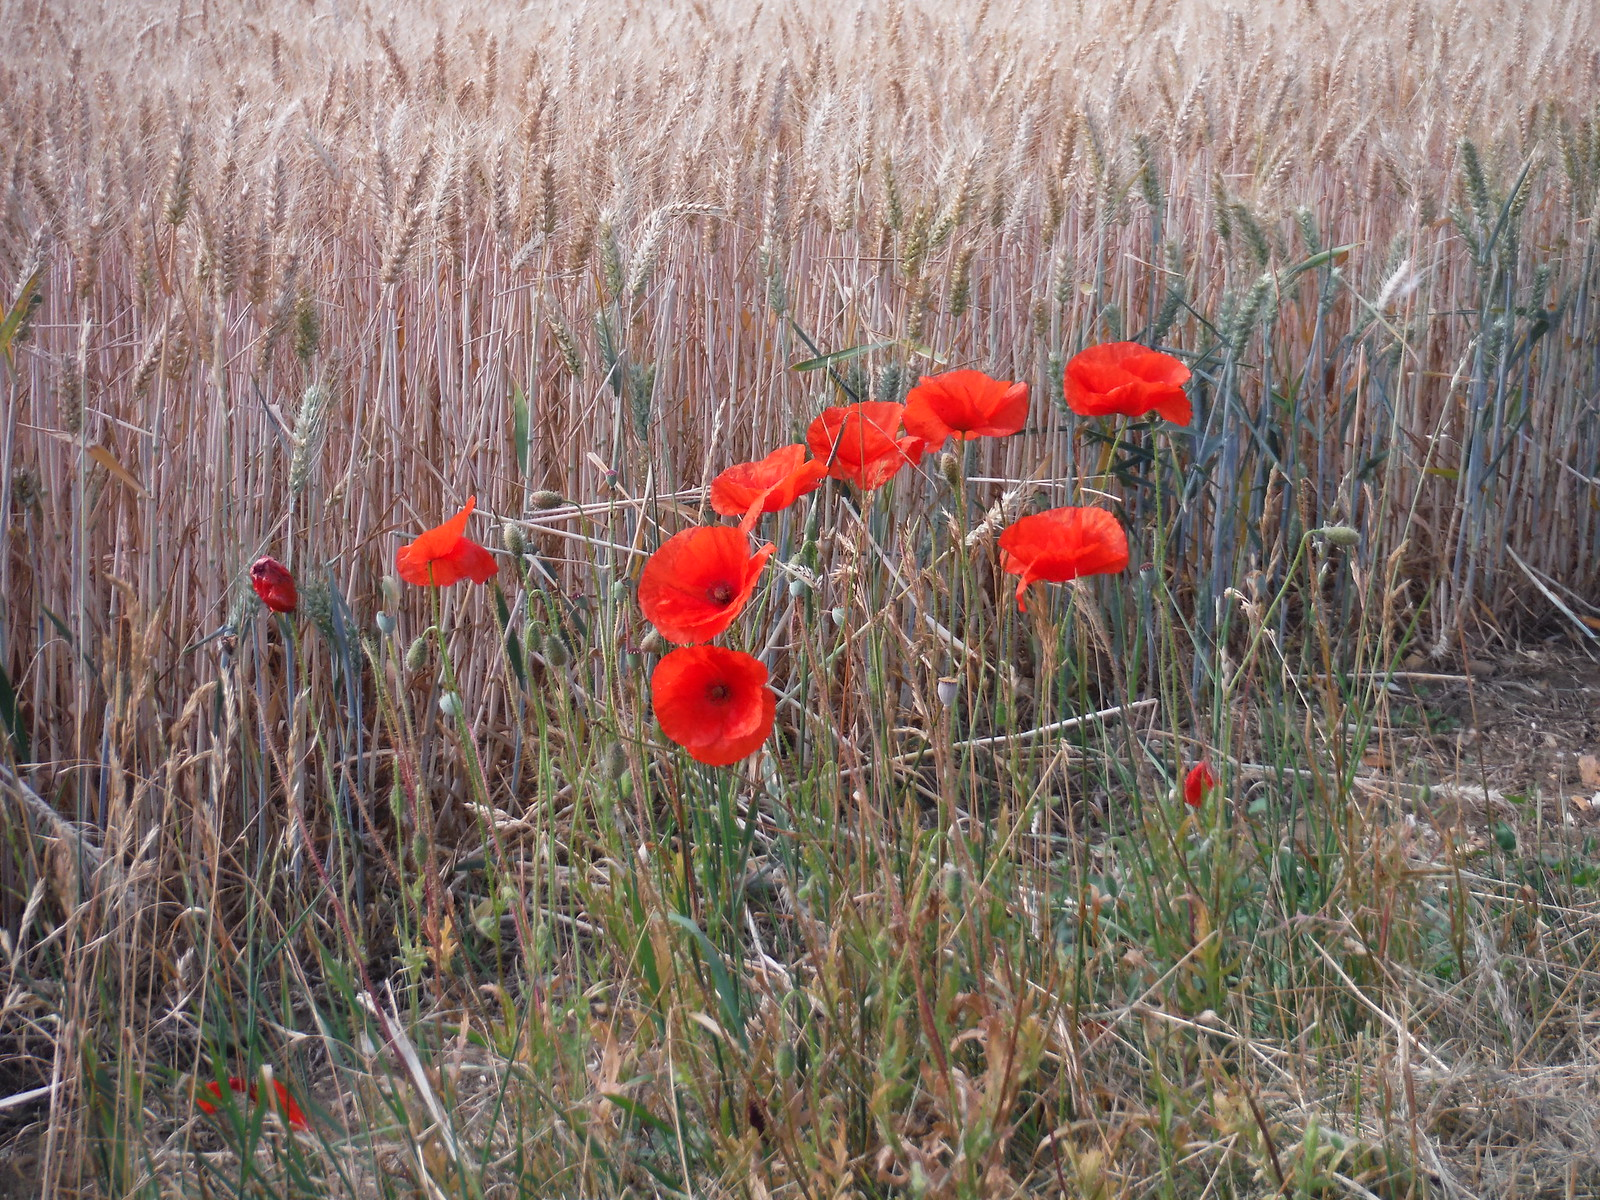 Poppies on field verge SWC Walk 233 - Arlesey to Letchworth Garden City